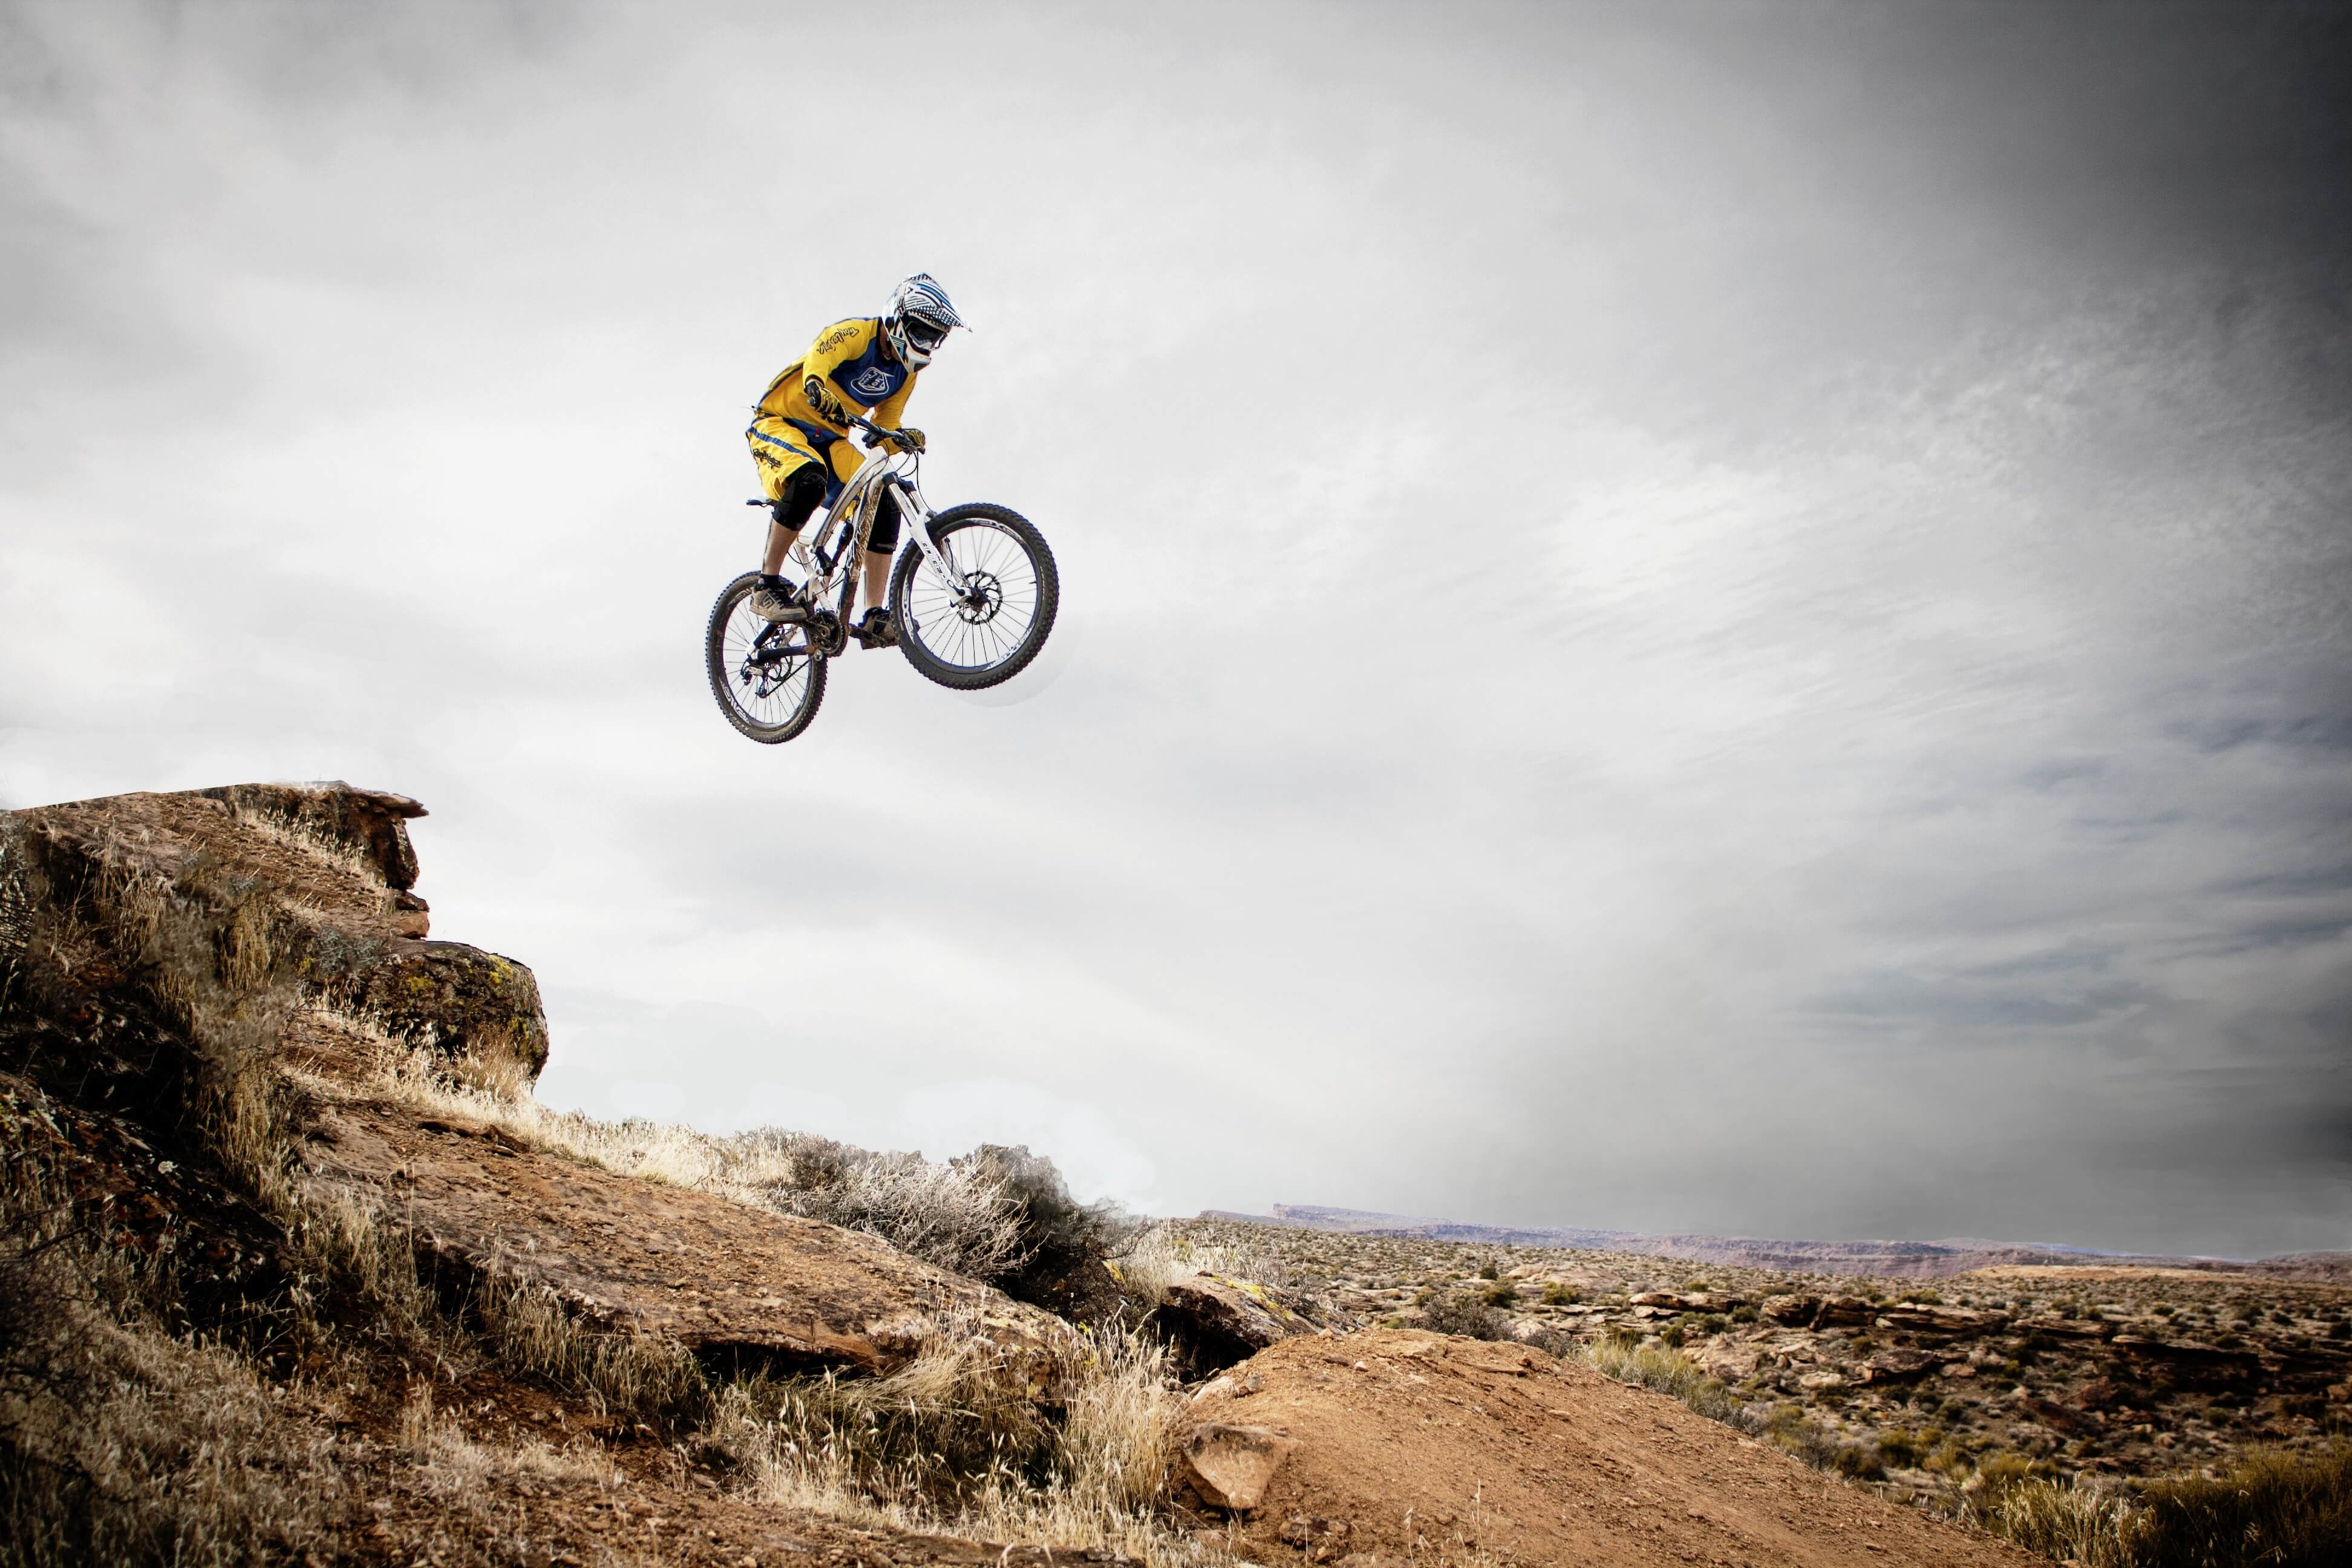 Action bicyclist jumping a rocky mound